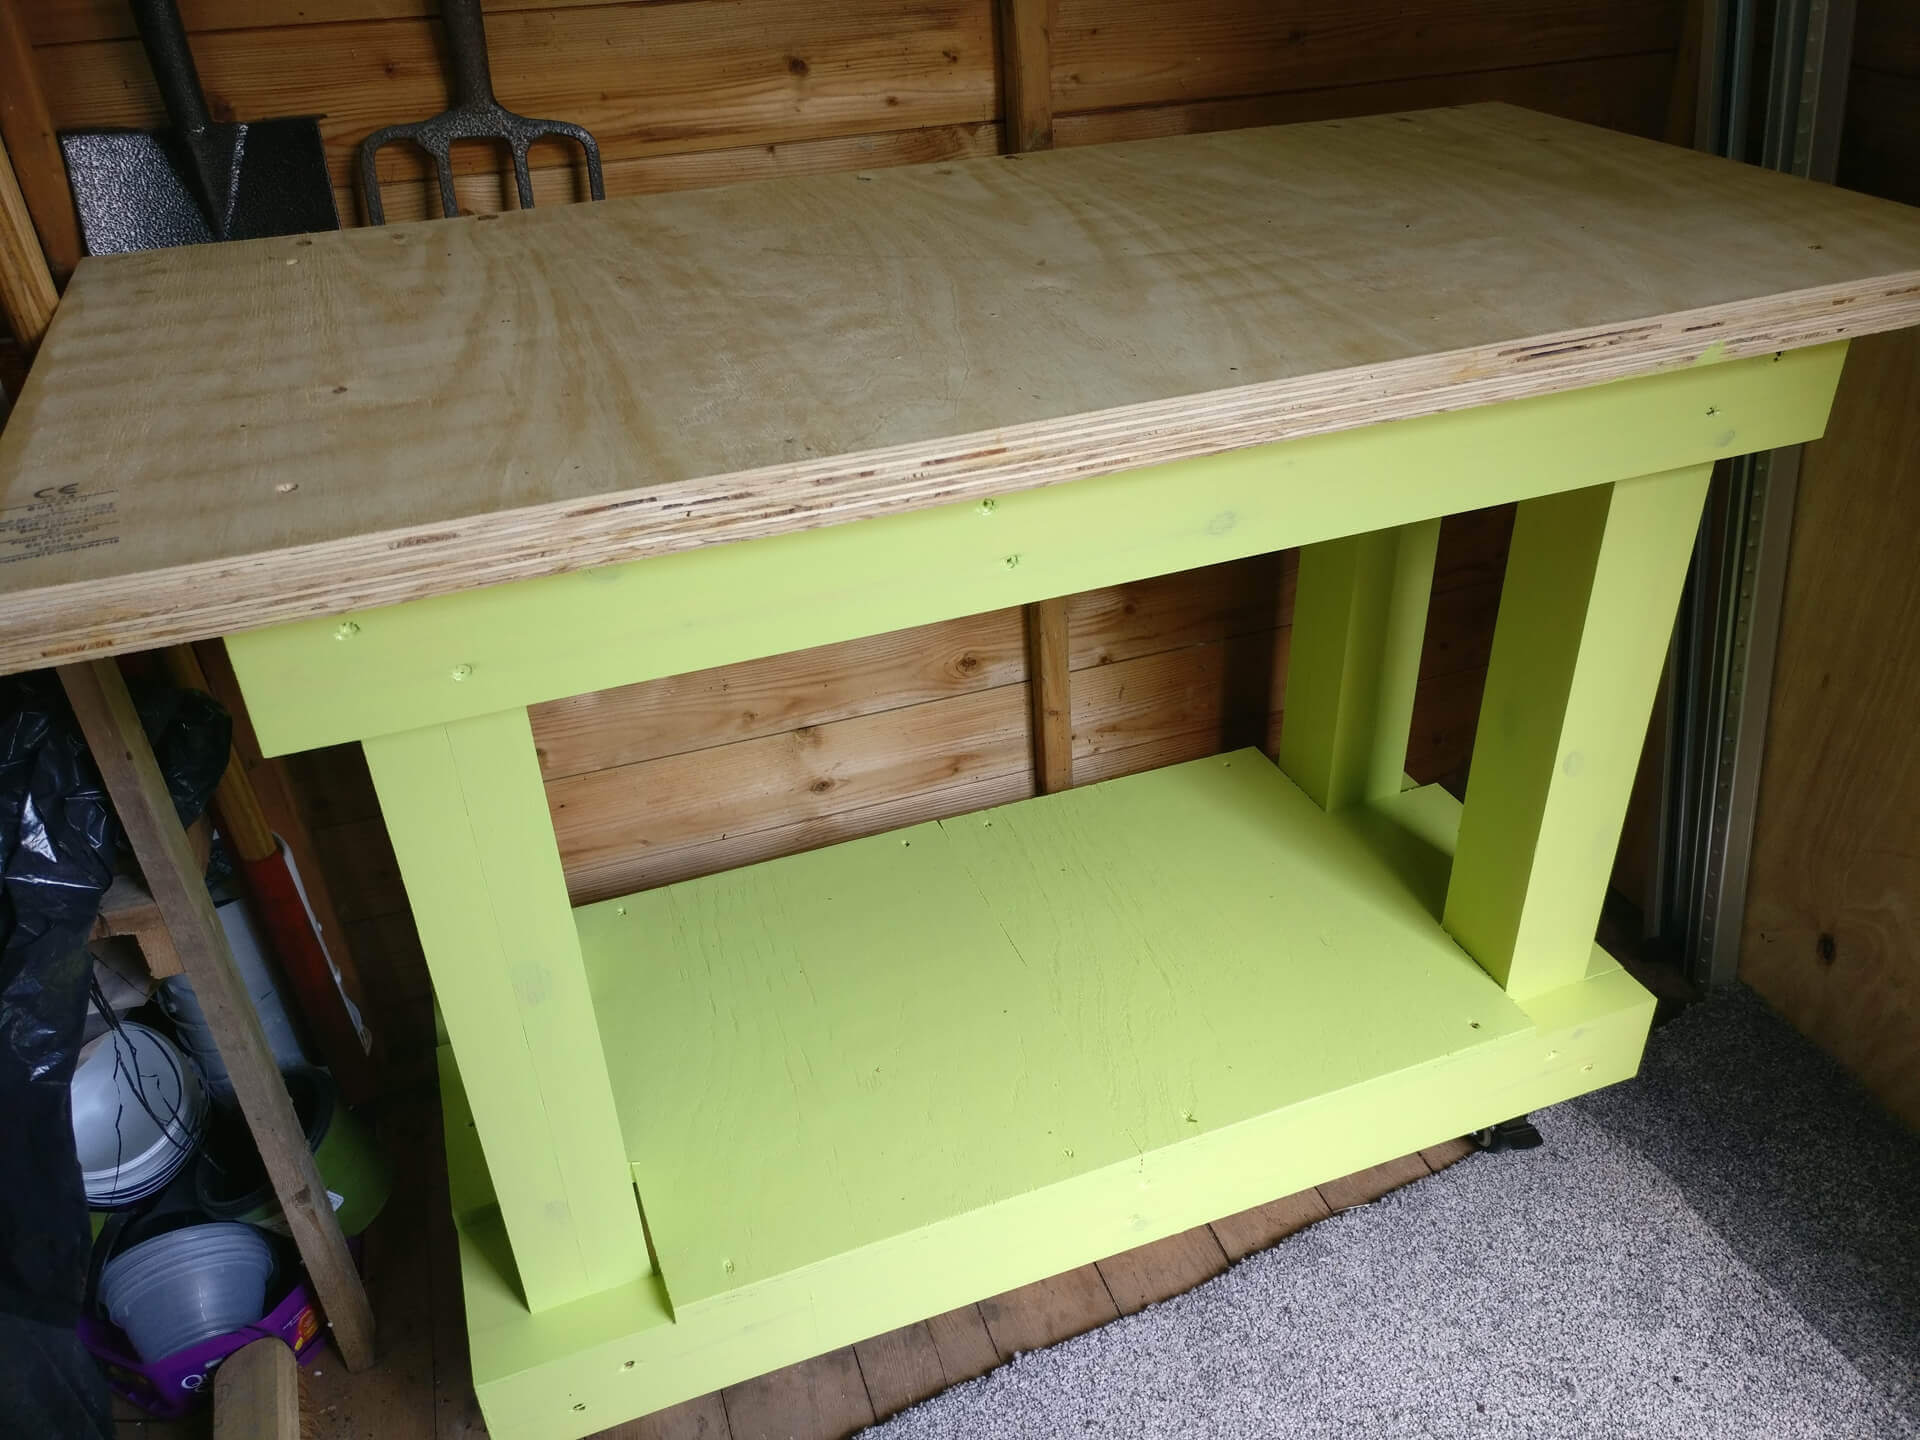 I built a workbench